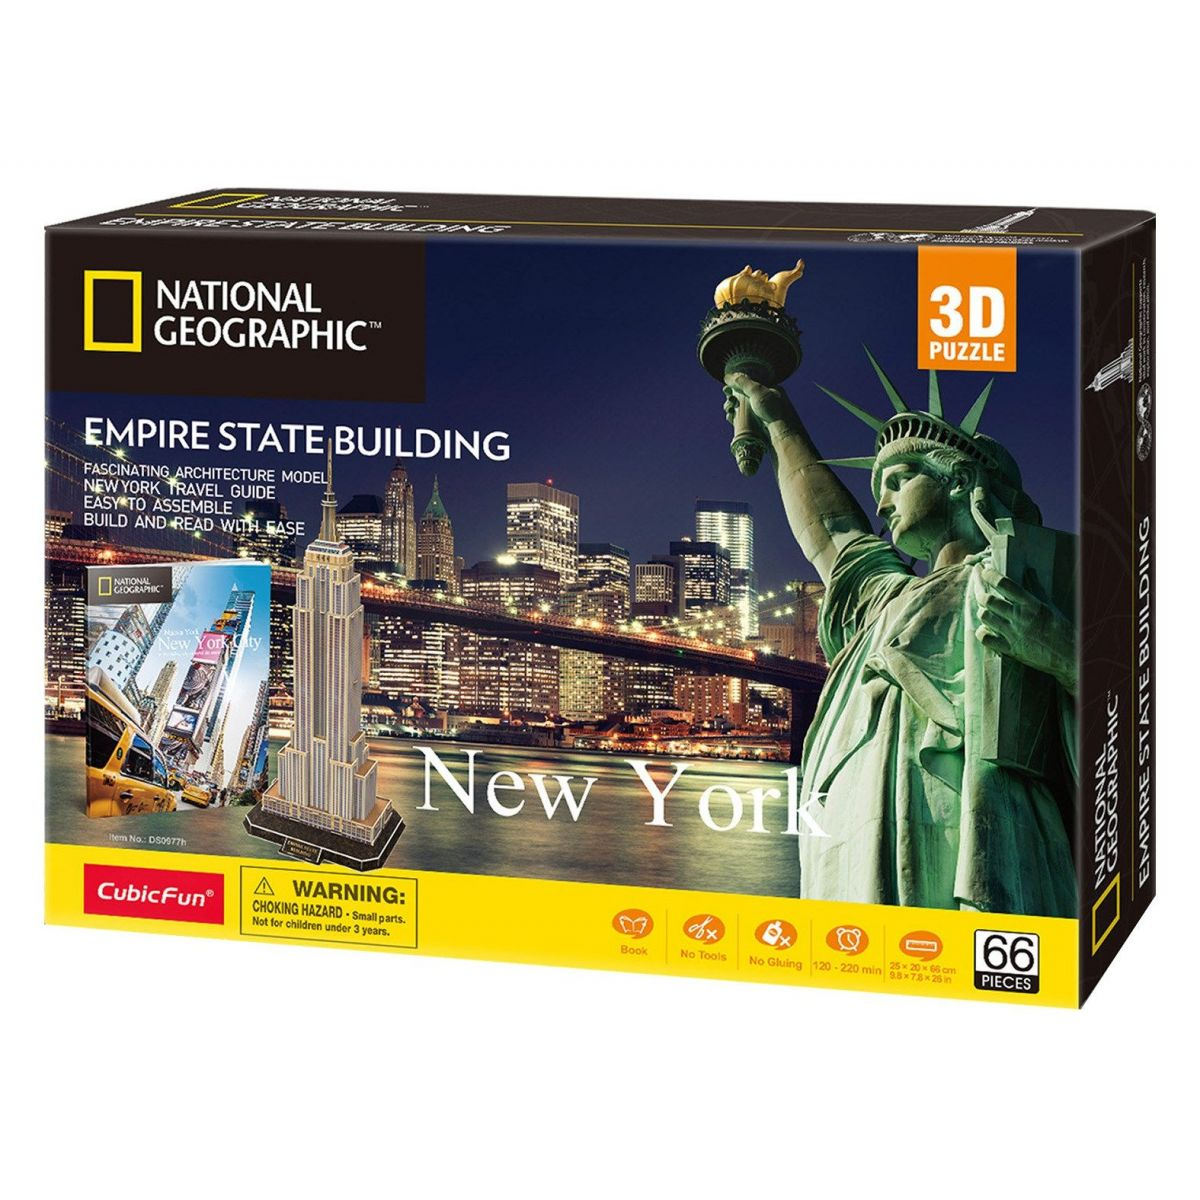 CubicFun Puzzle 3D National Geographic Empire State Building 66 dílků